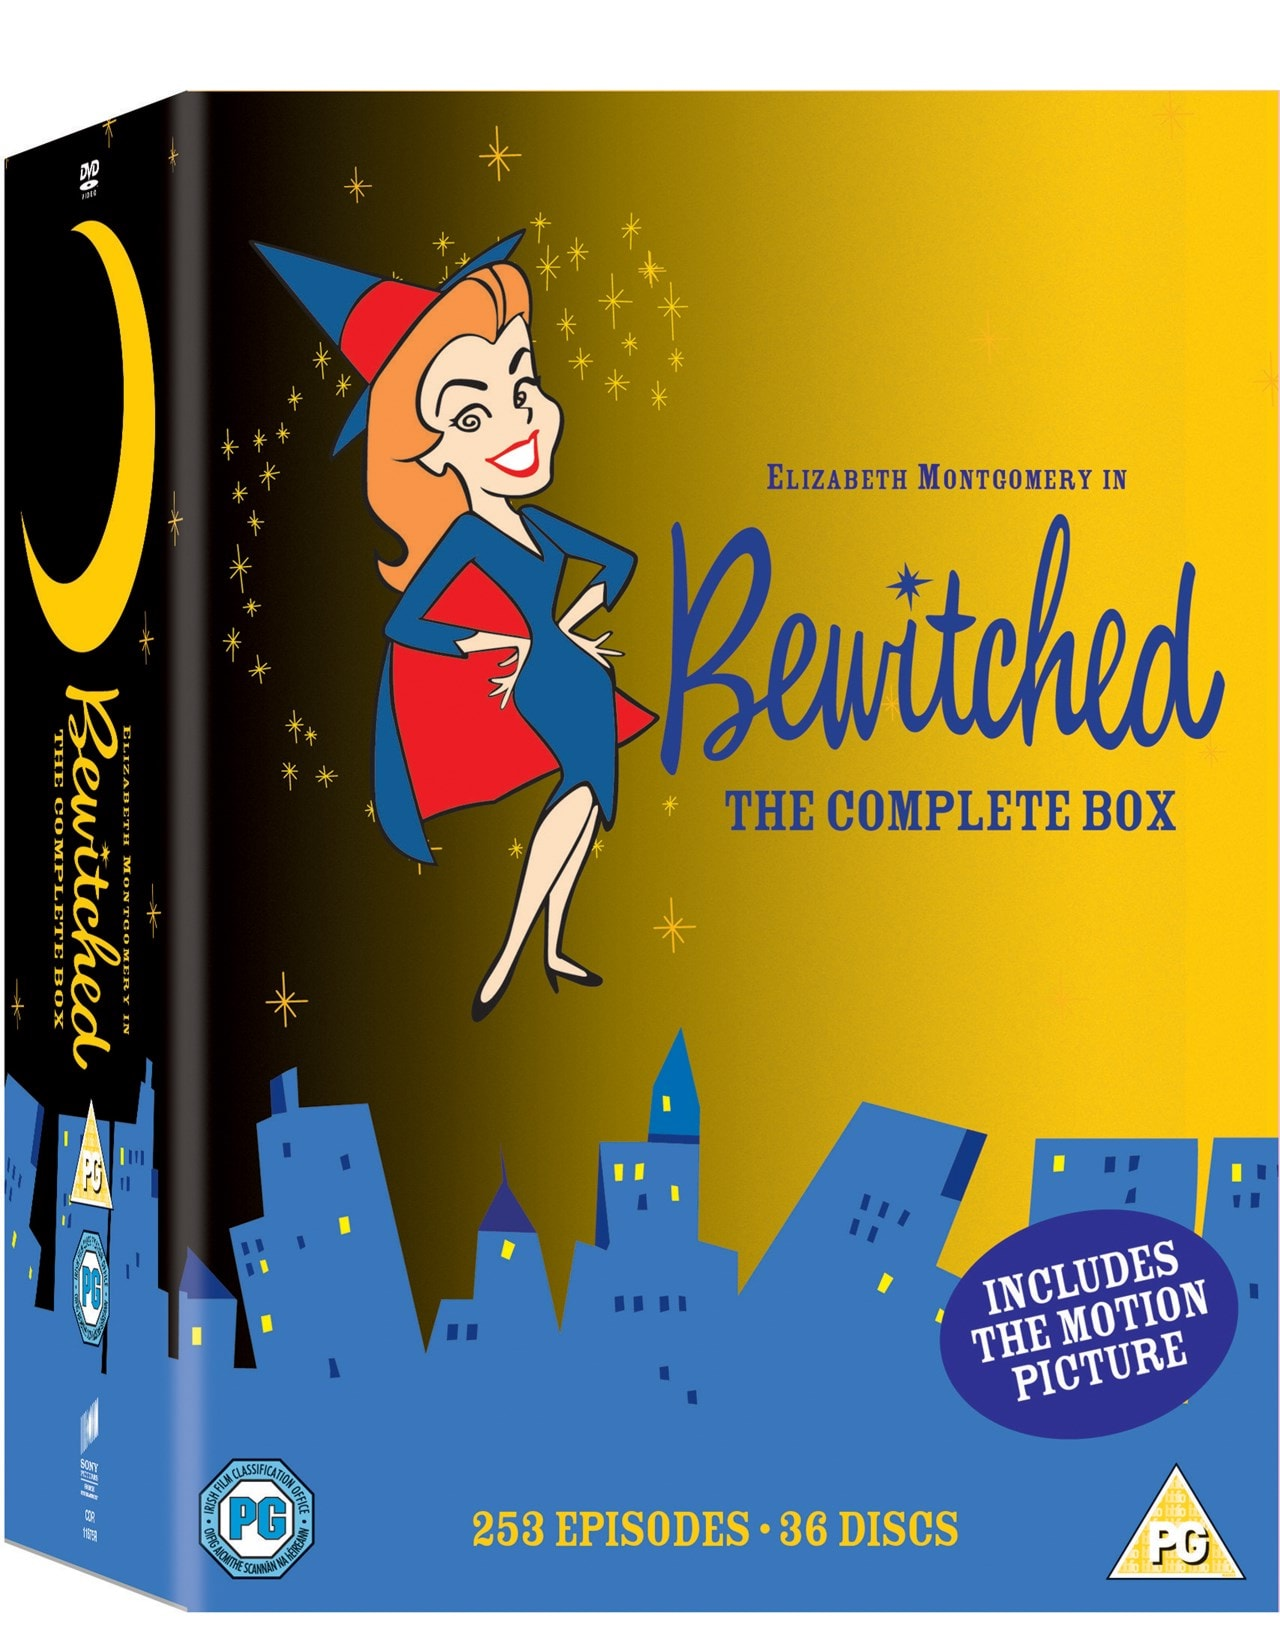 Bewitched Seasons 1 8 Dvd Free Shipping Over 20 Hmv Store